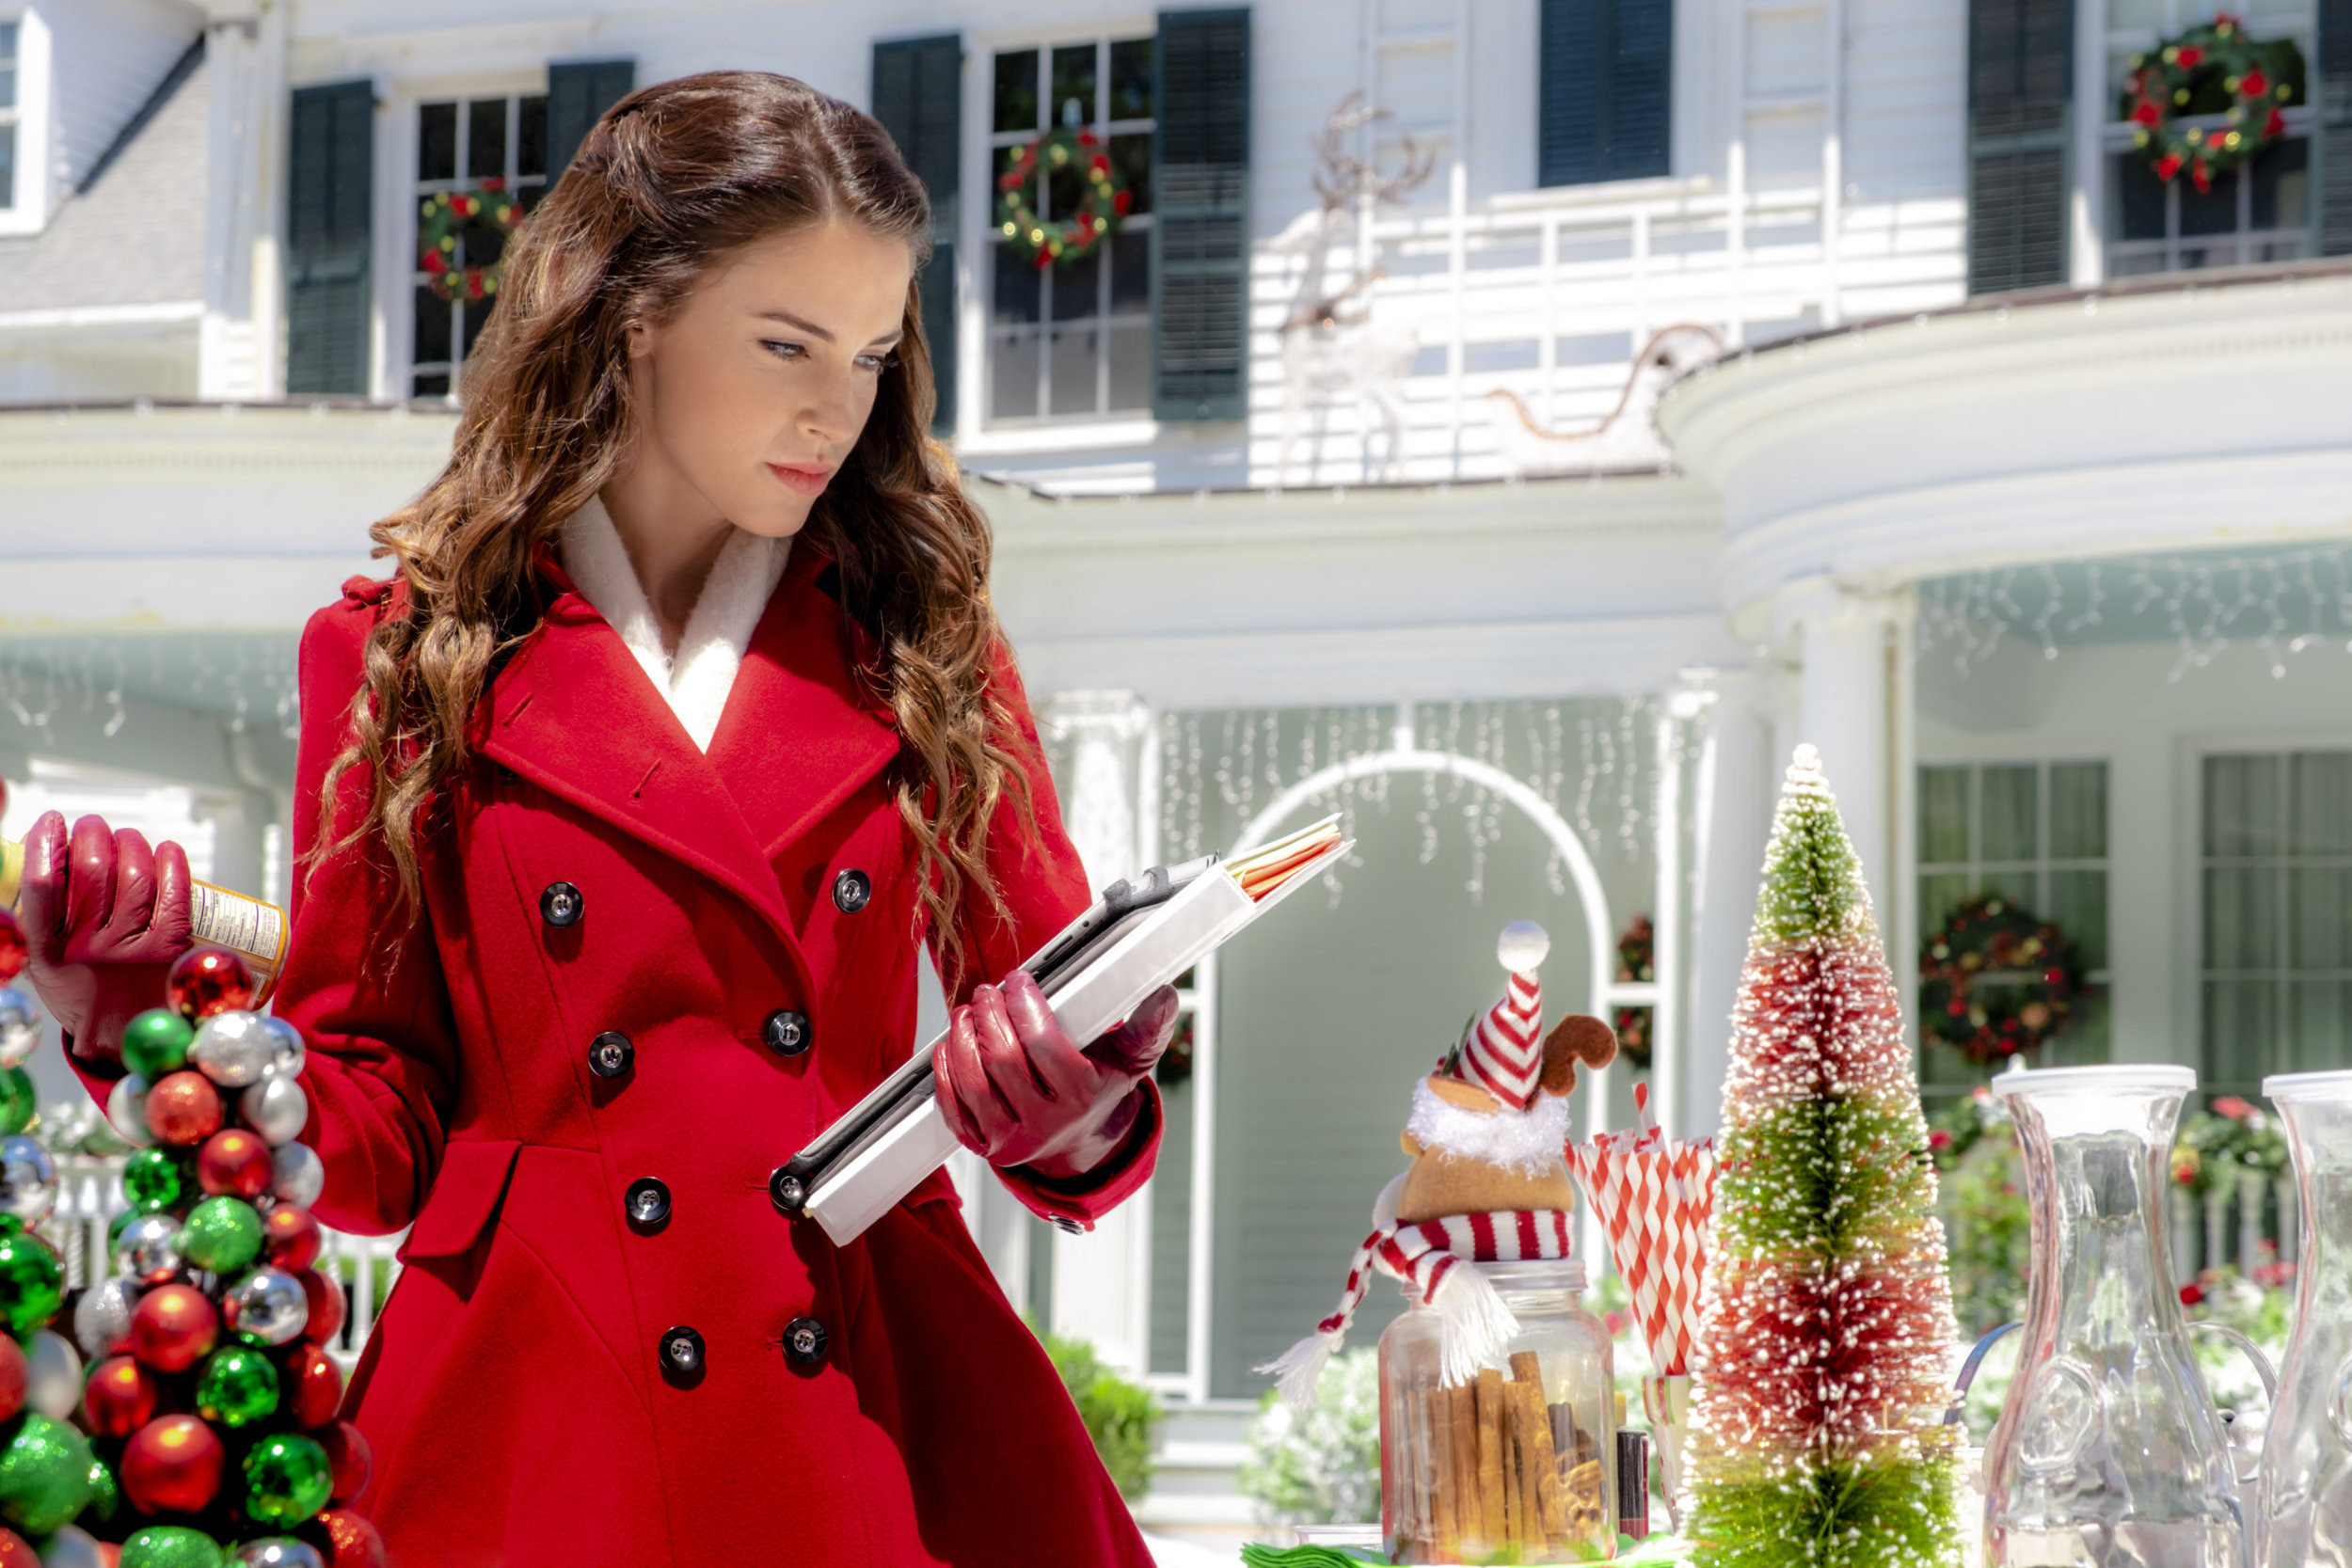 Christmas At Pemberley.On Location Christmas At Pemberley Manor Hallmark Channel